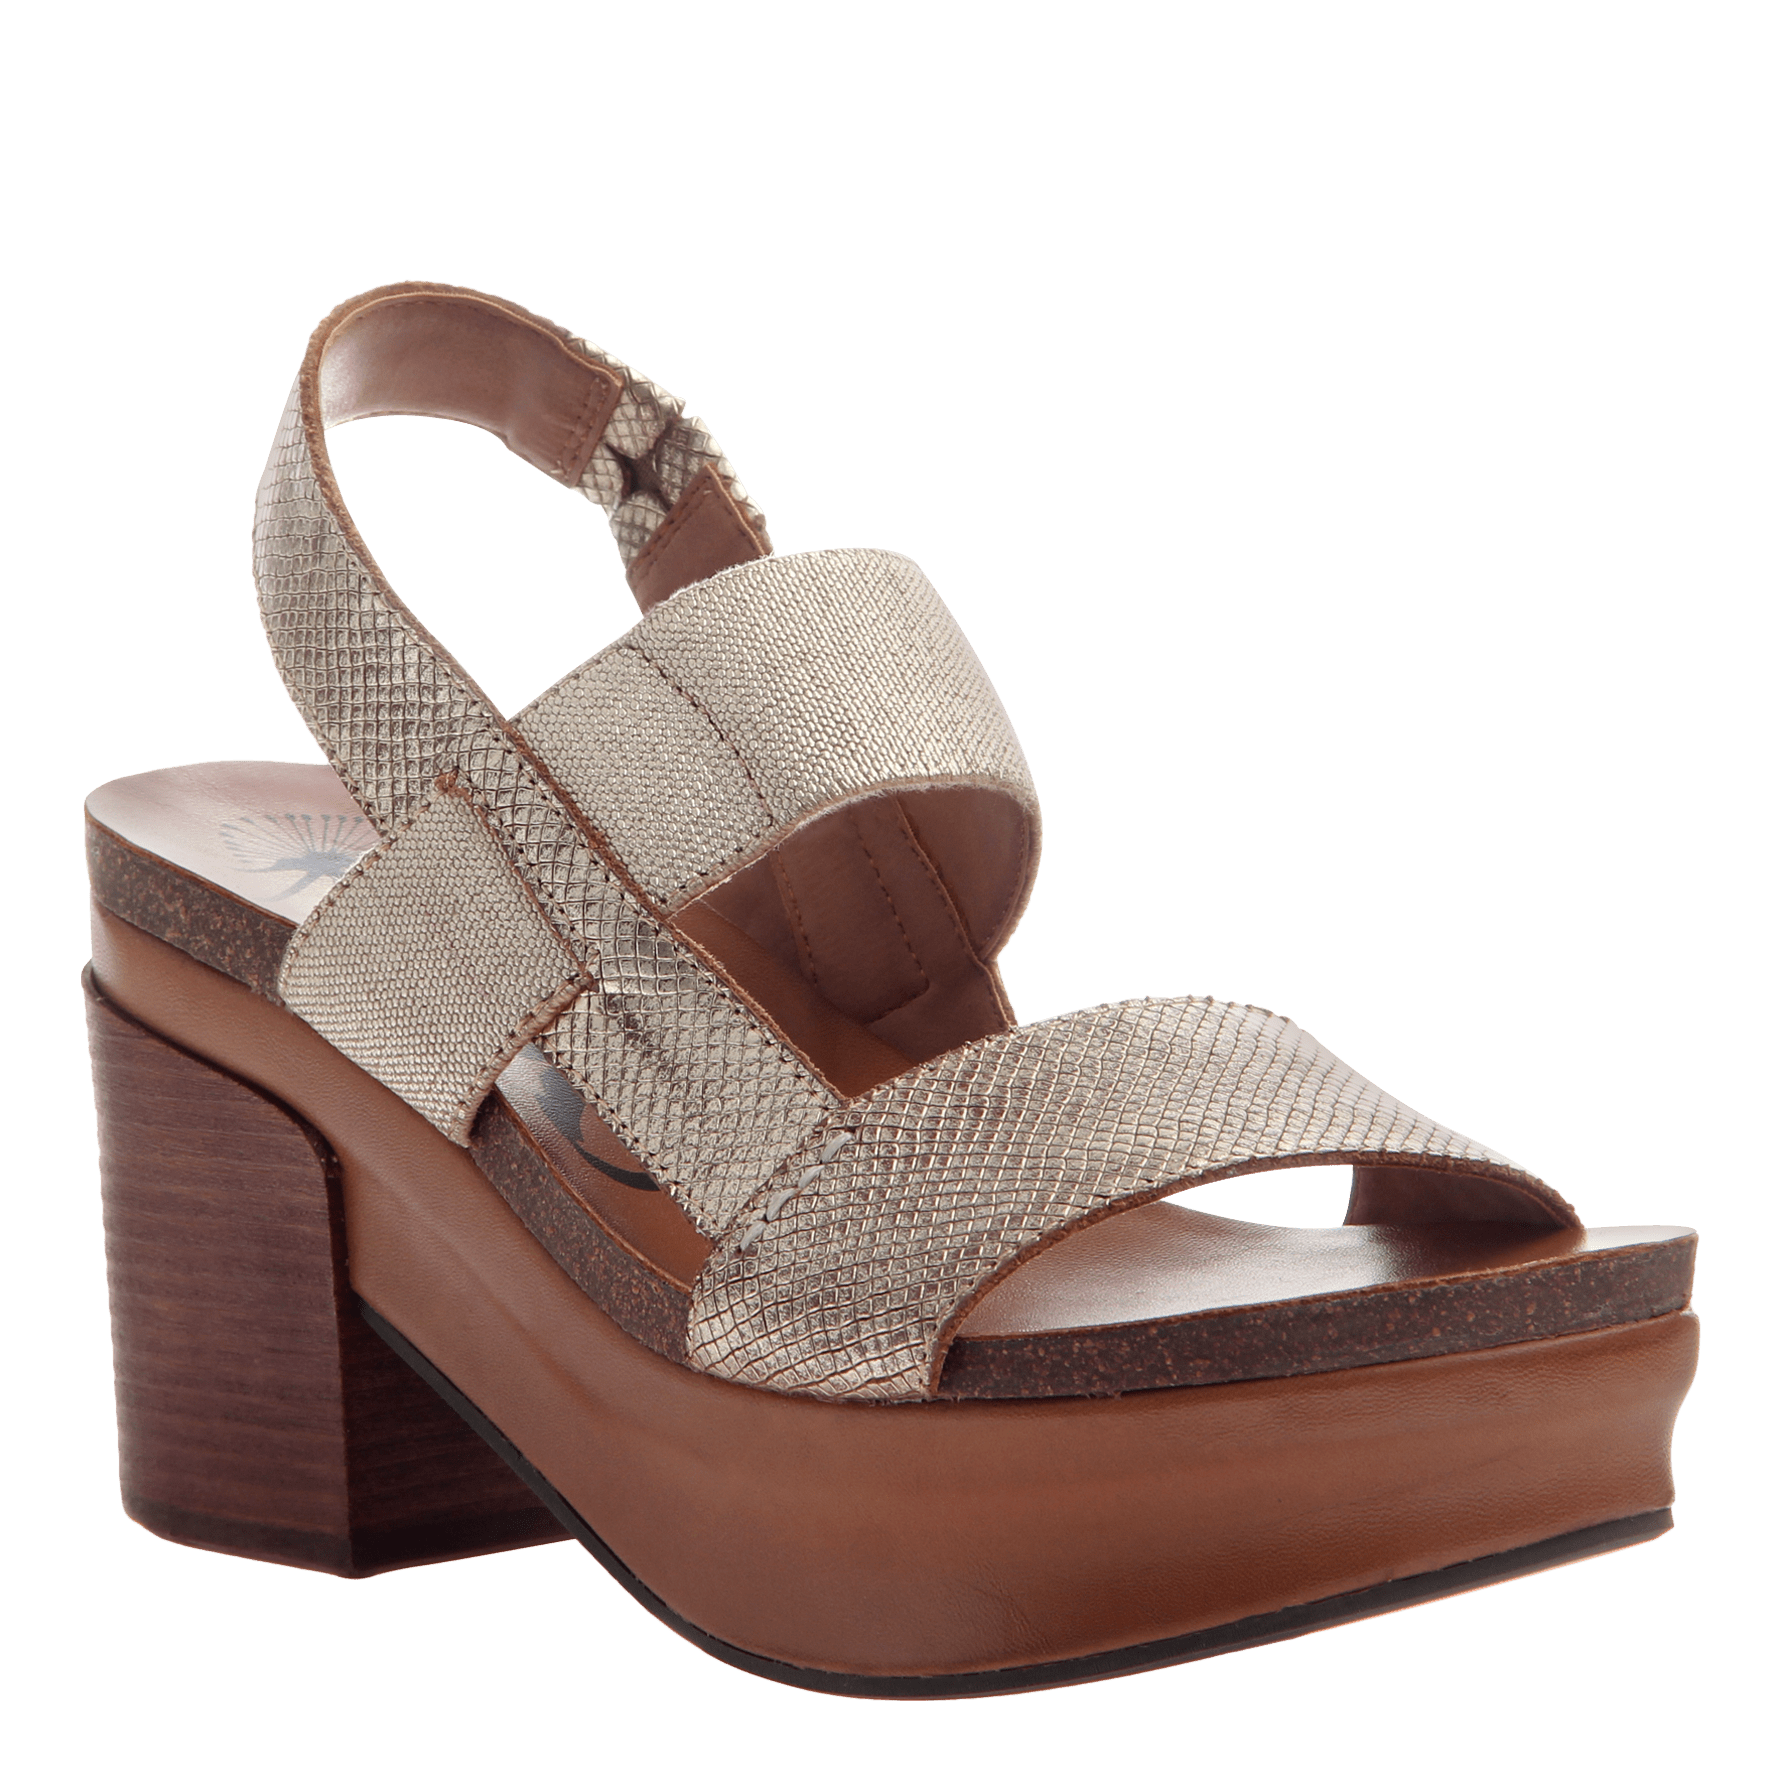 Indio women's stacked heel in Gold